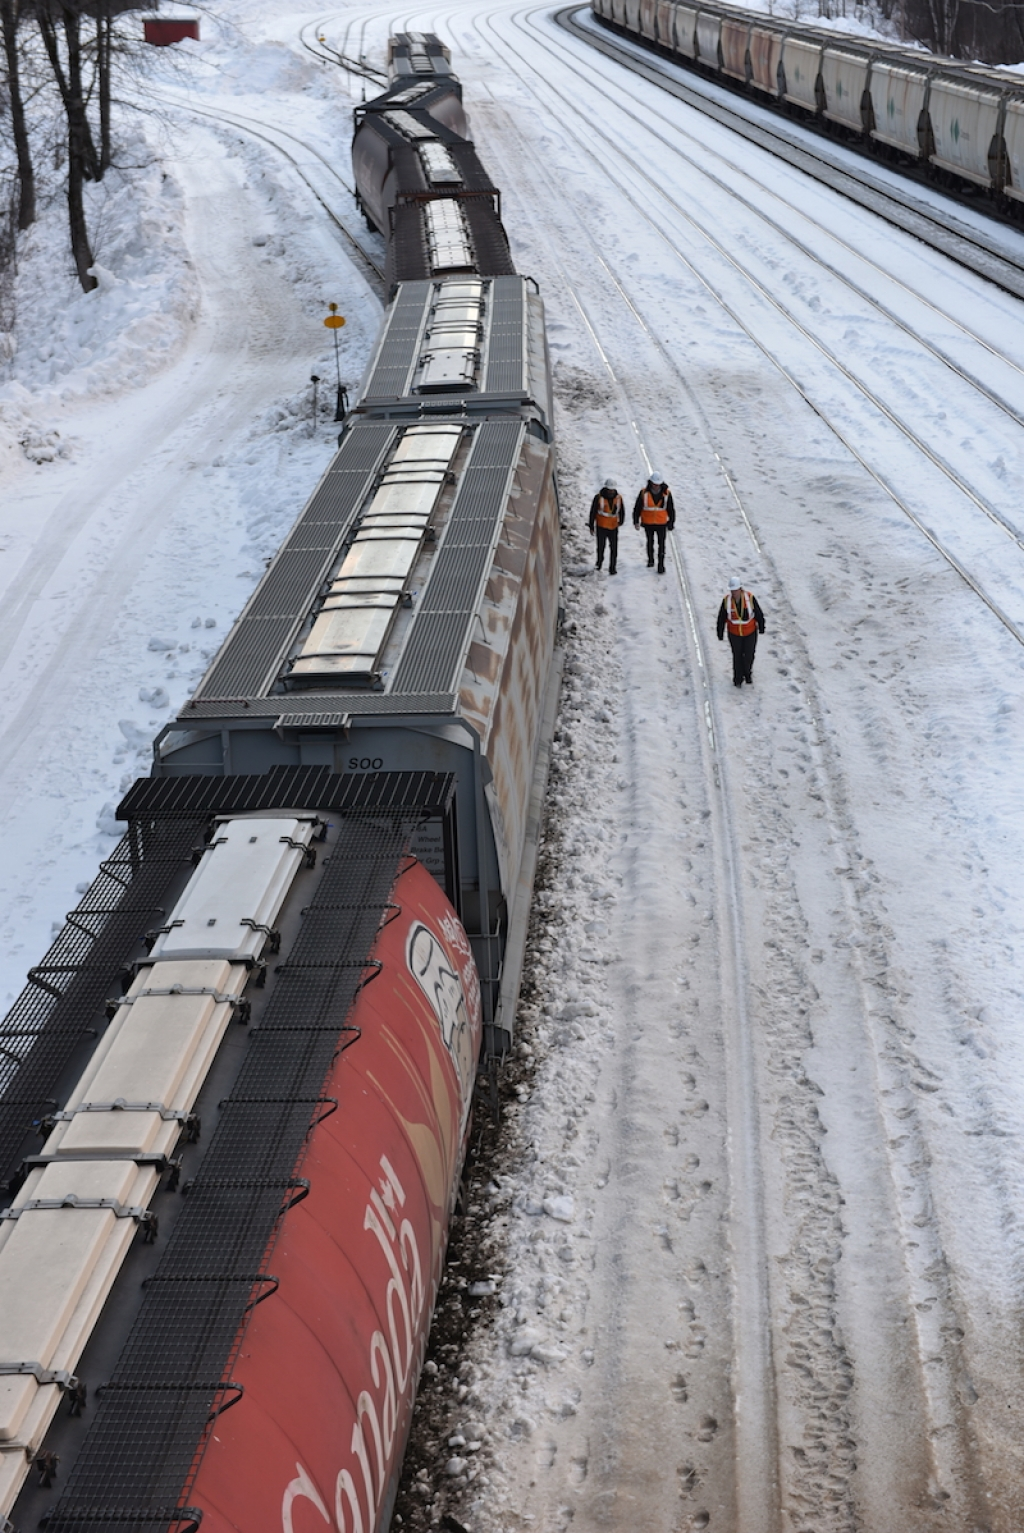 Updated: CP Rail train derails in Revelstoke - Revelstoke